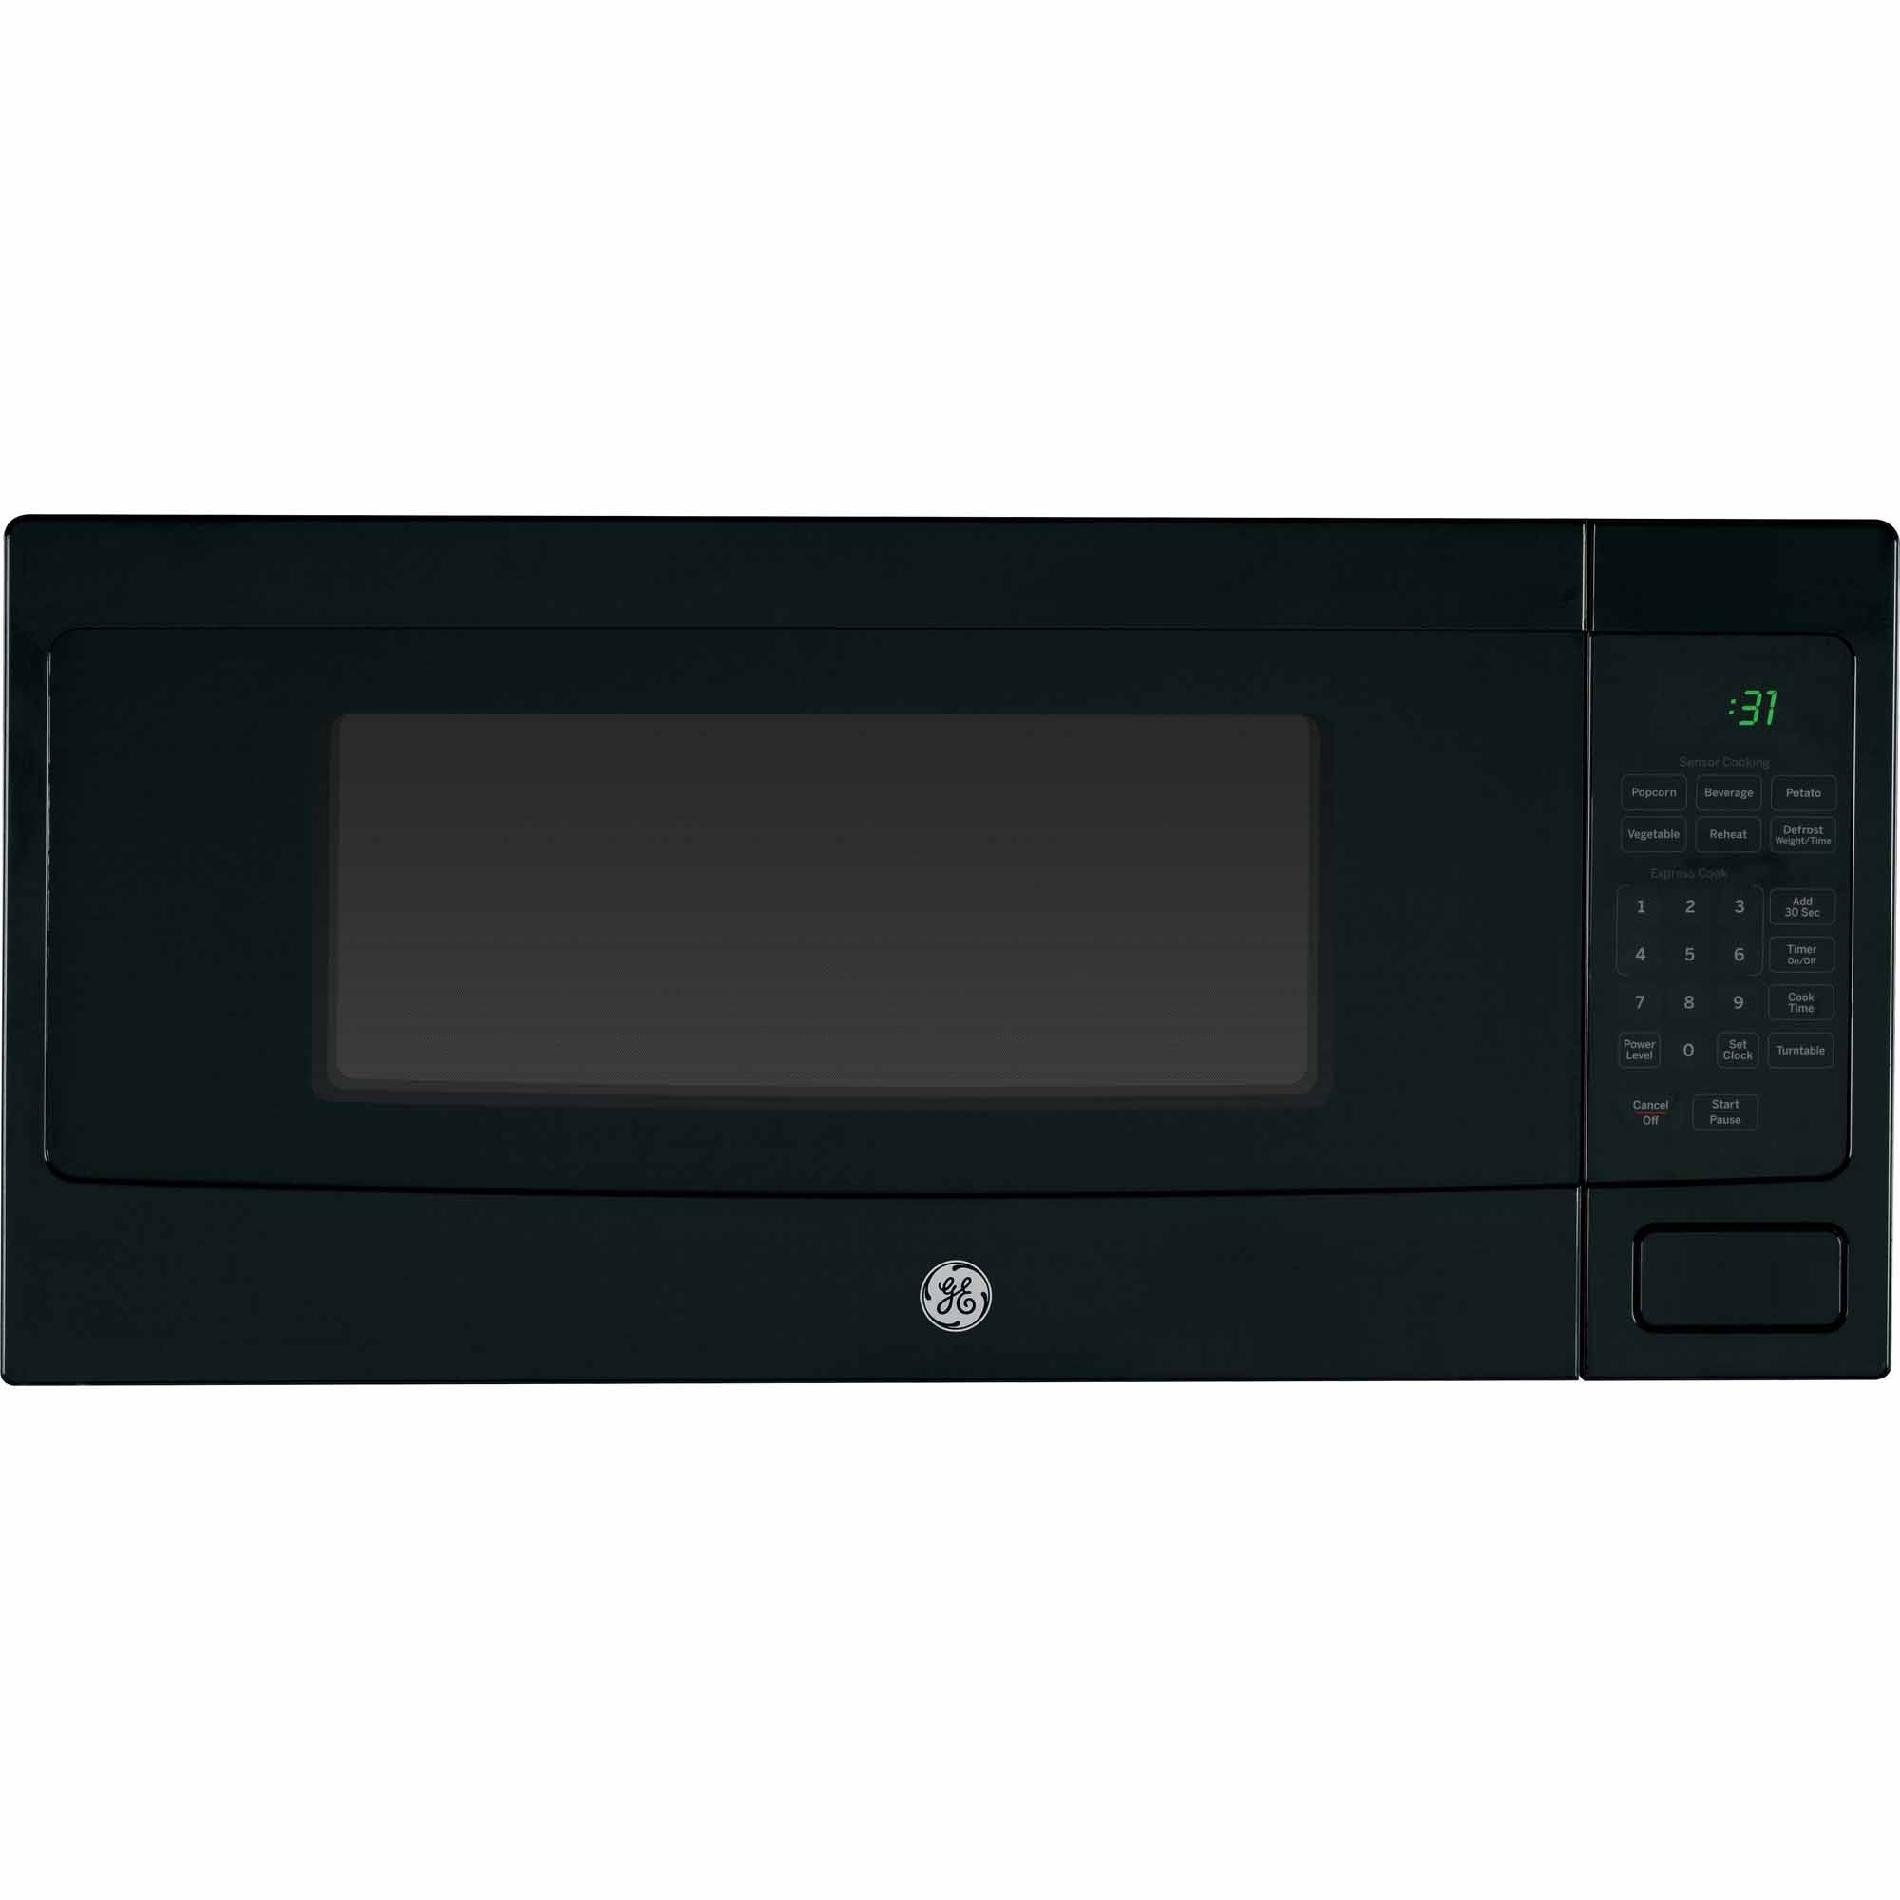 GE� PROFILE� 1.1 CU.FT. COUNTERTOP MICROWAVE OVEN, BLACK, 800 W